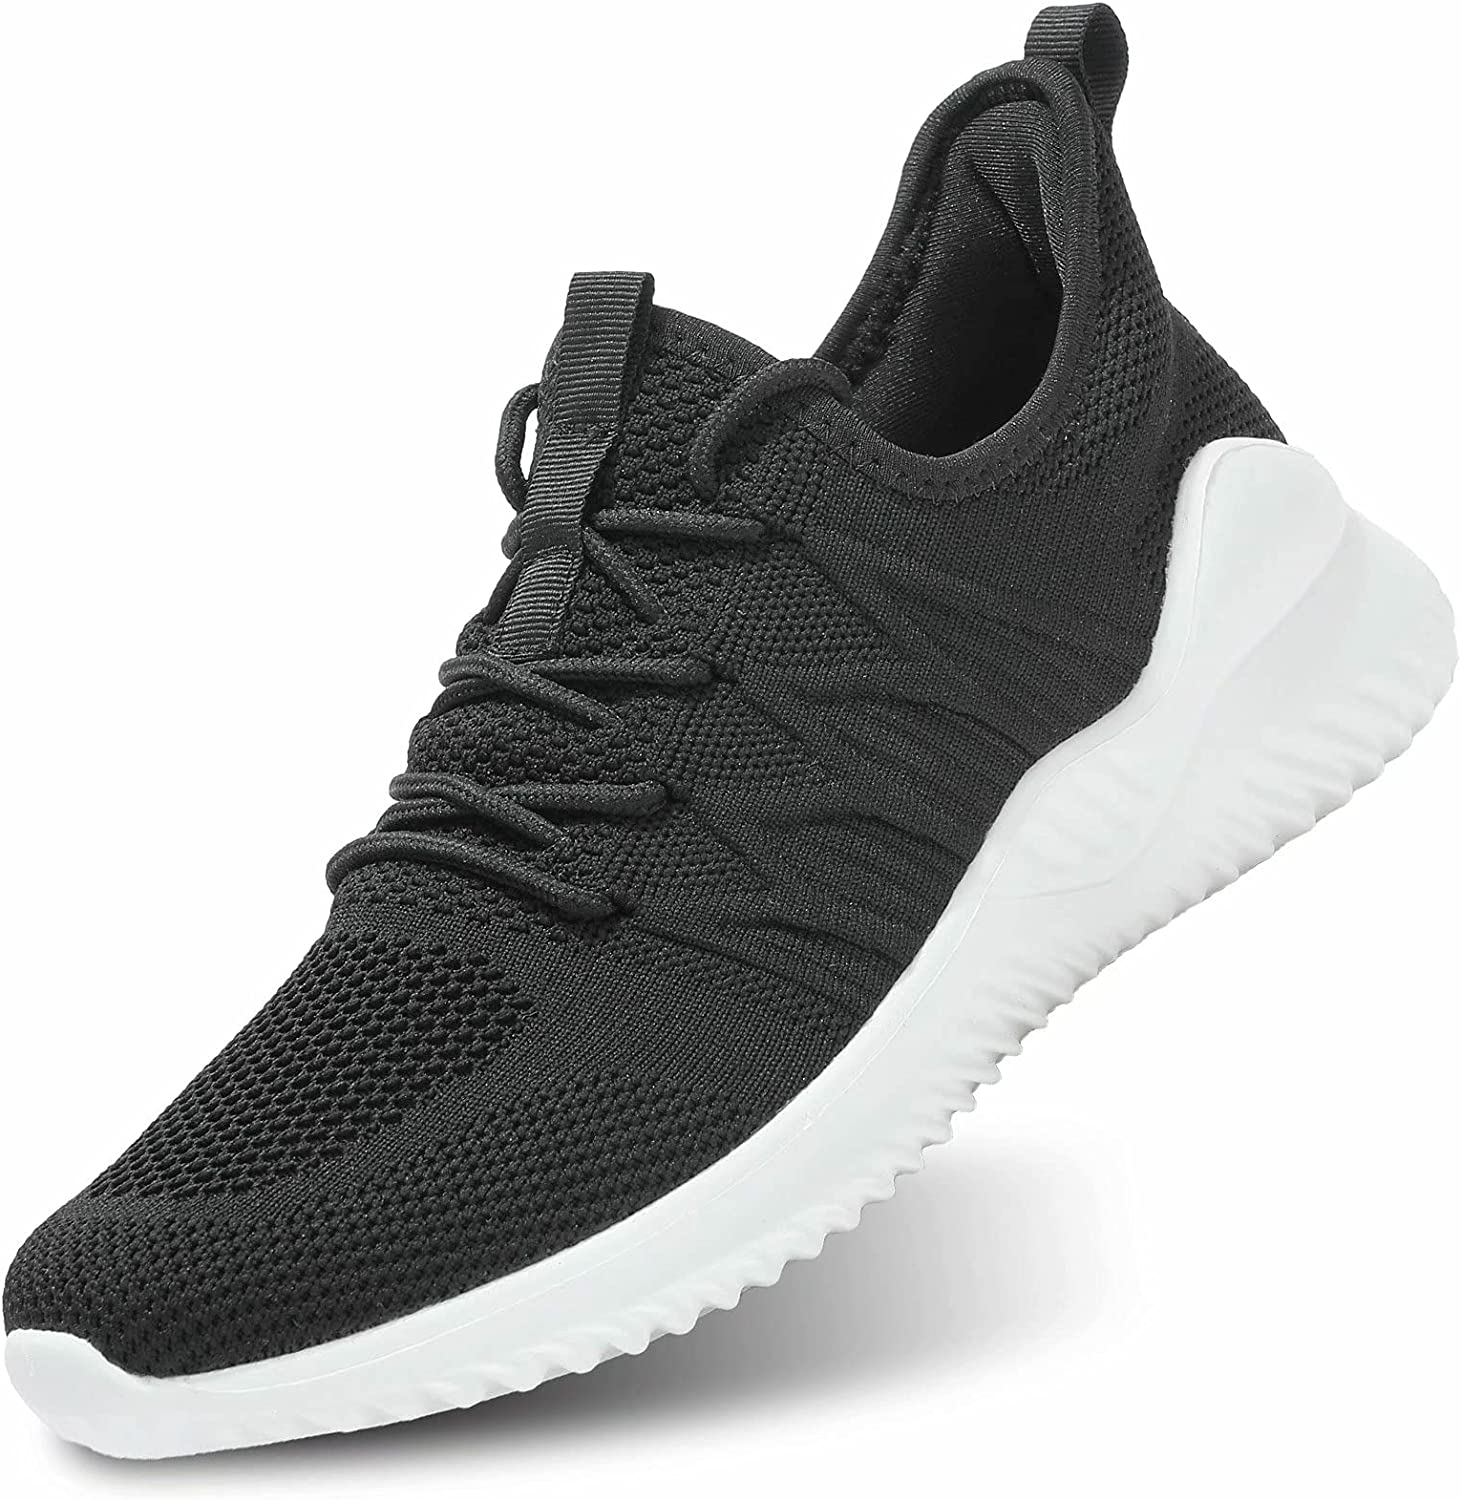 Mens Running Shoes Slip-on Sneakers Breathab Lightweight Walking security Discount is also underway